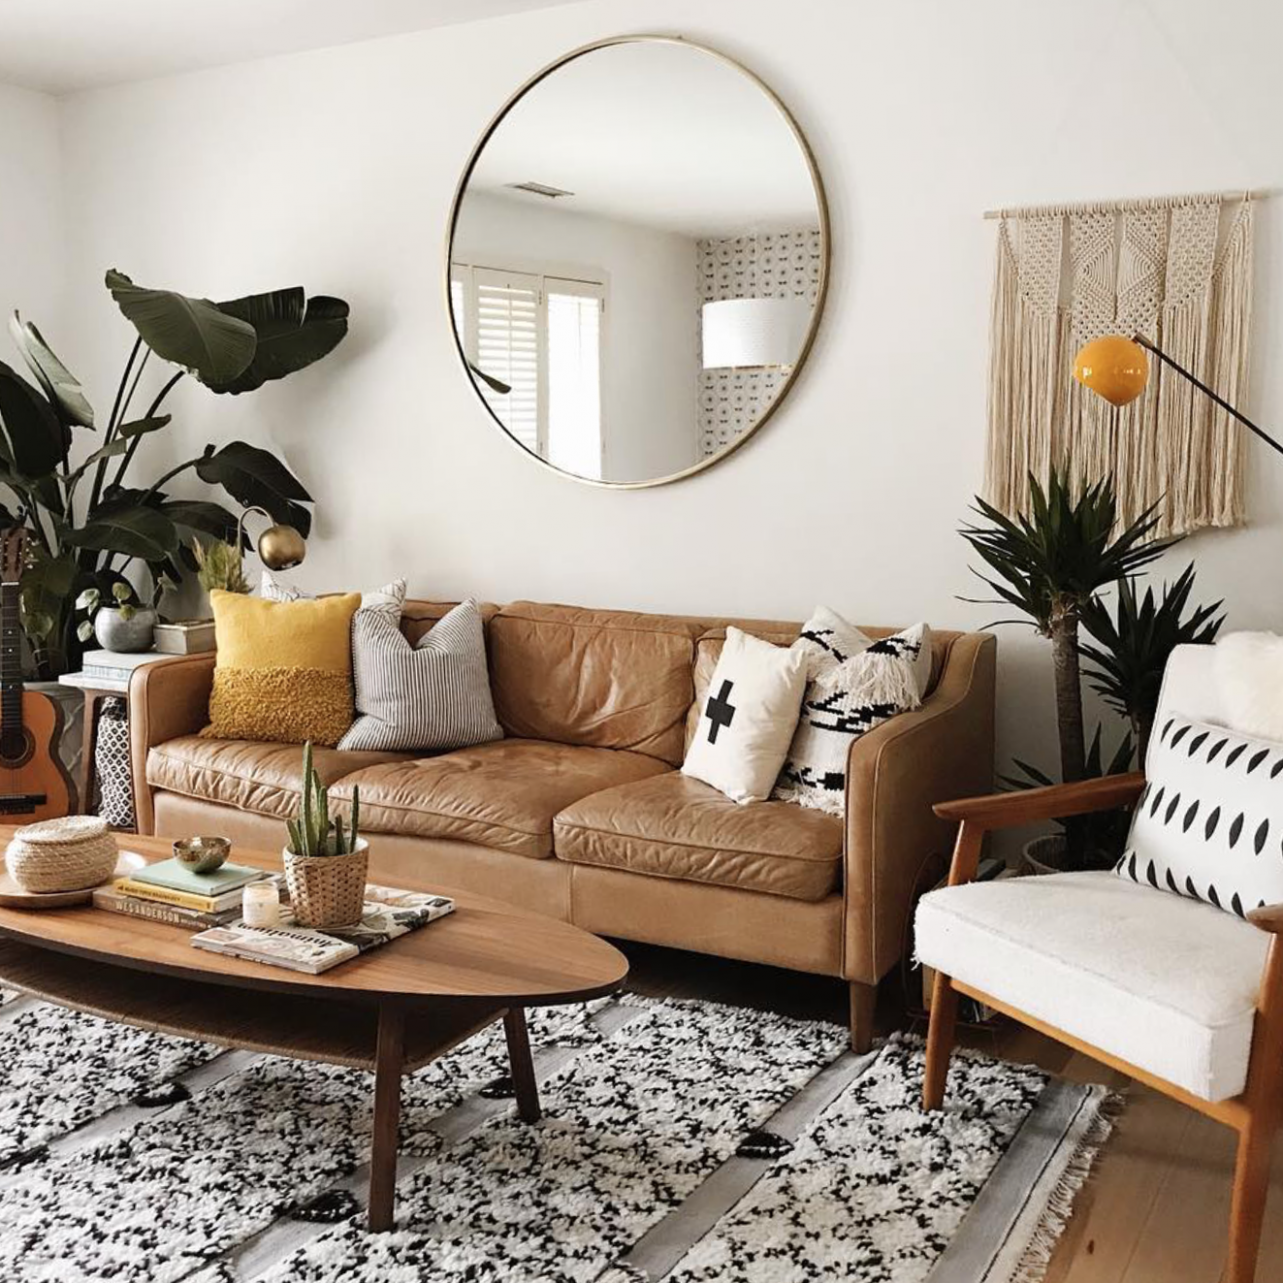 12 Apartment Decorating and Small Living Room Ideas  The Anastasia Co - Apartment Decorating Ideas Ideas